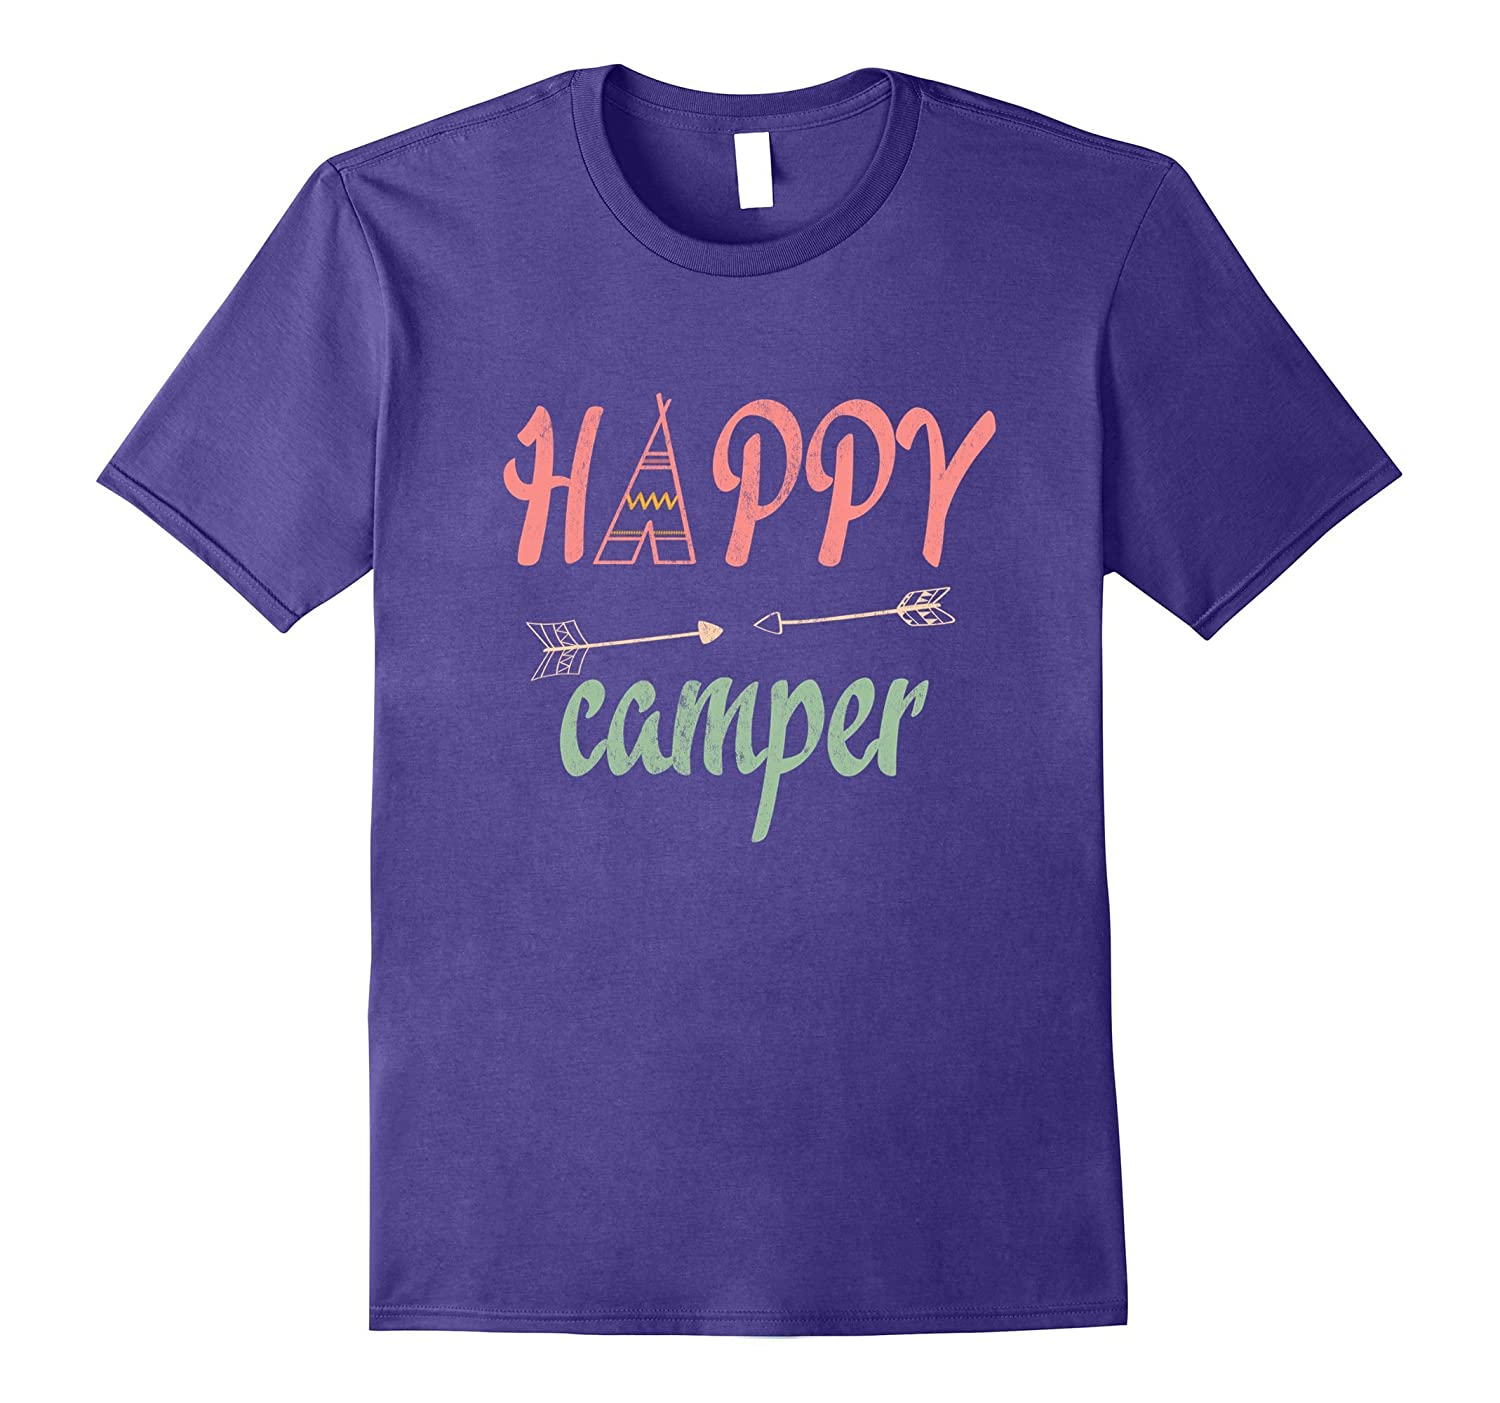 Arrow Happy Camper TShirt - Funny Camping Shirt-T-Shirt